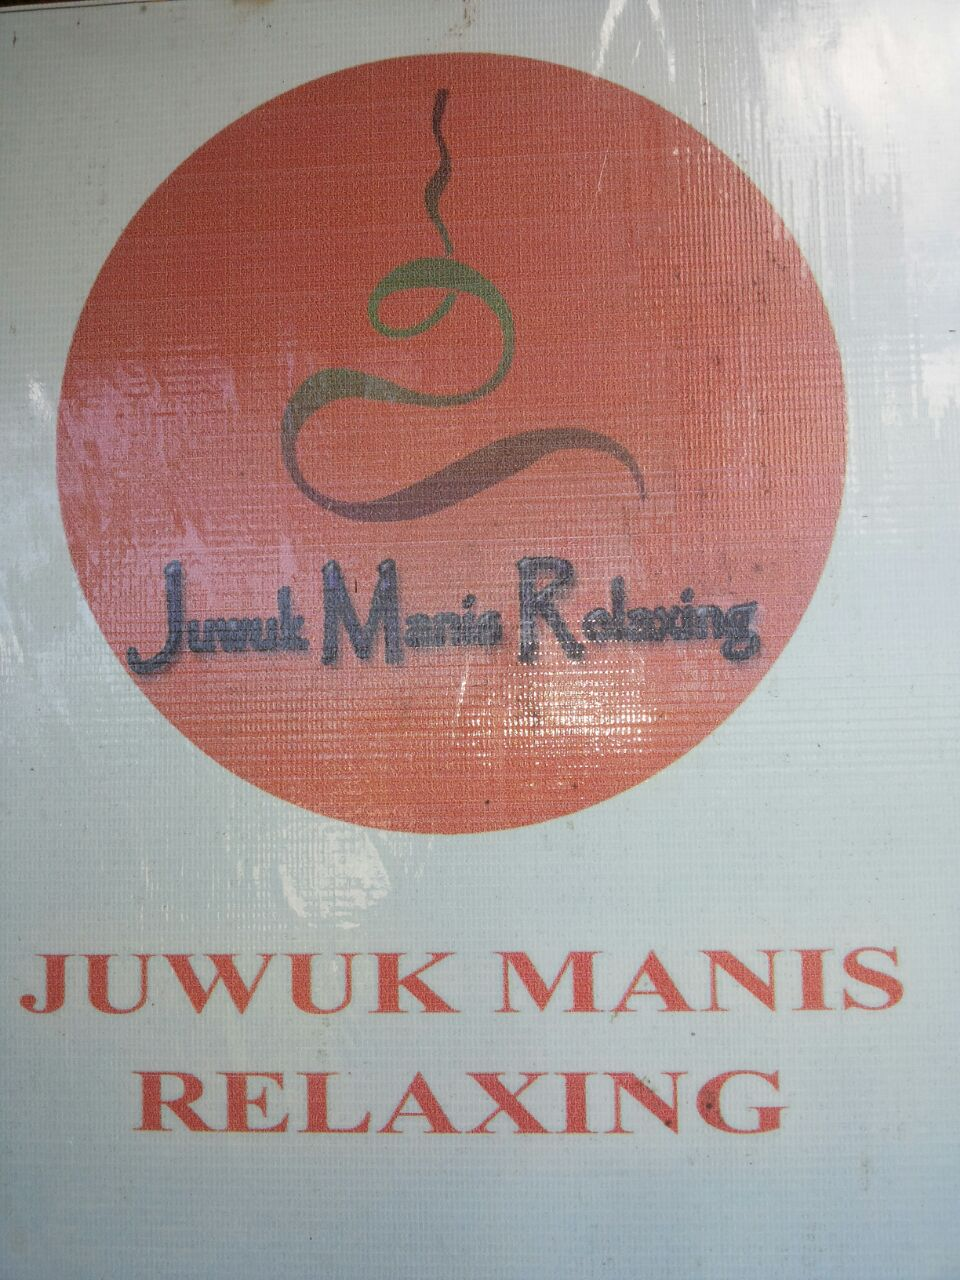 [Review] Juwuk Manis Relaxing, Ubud